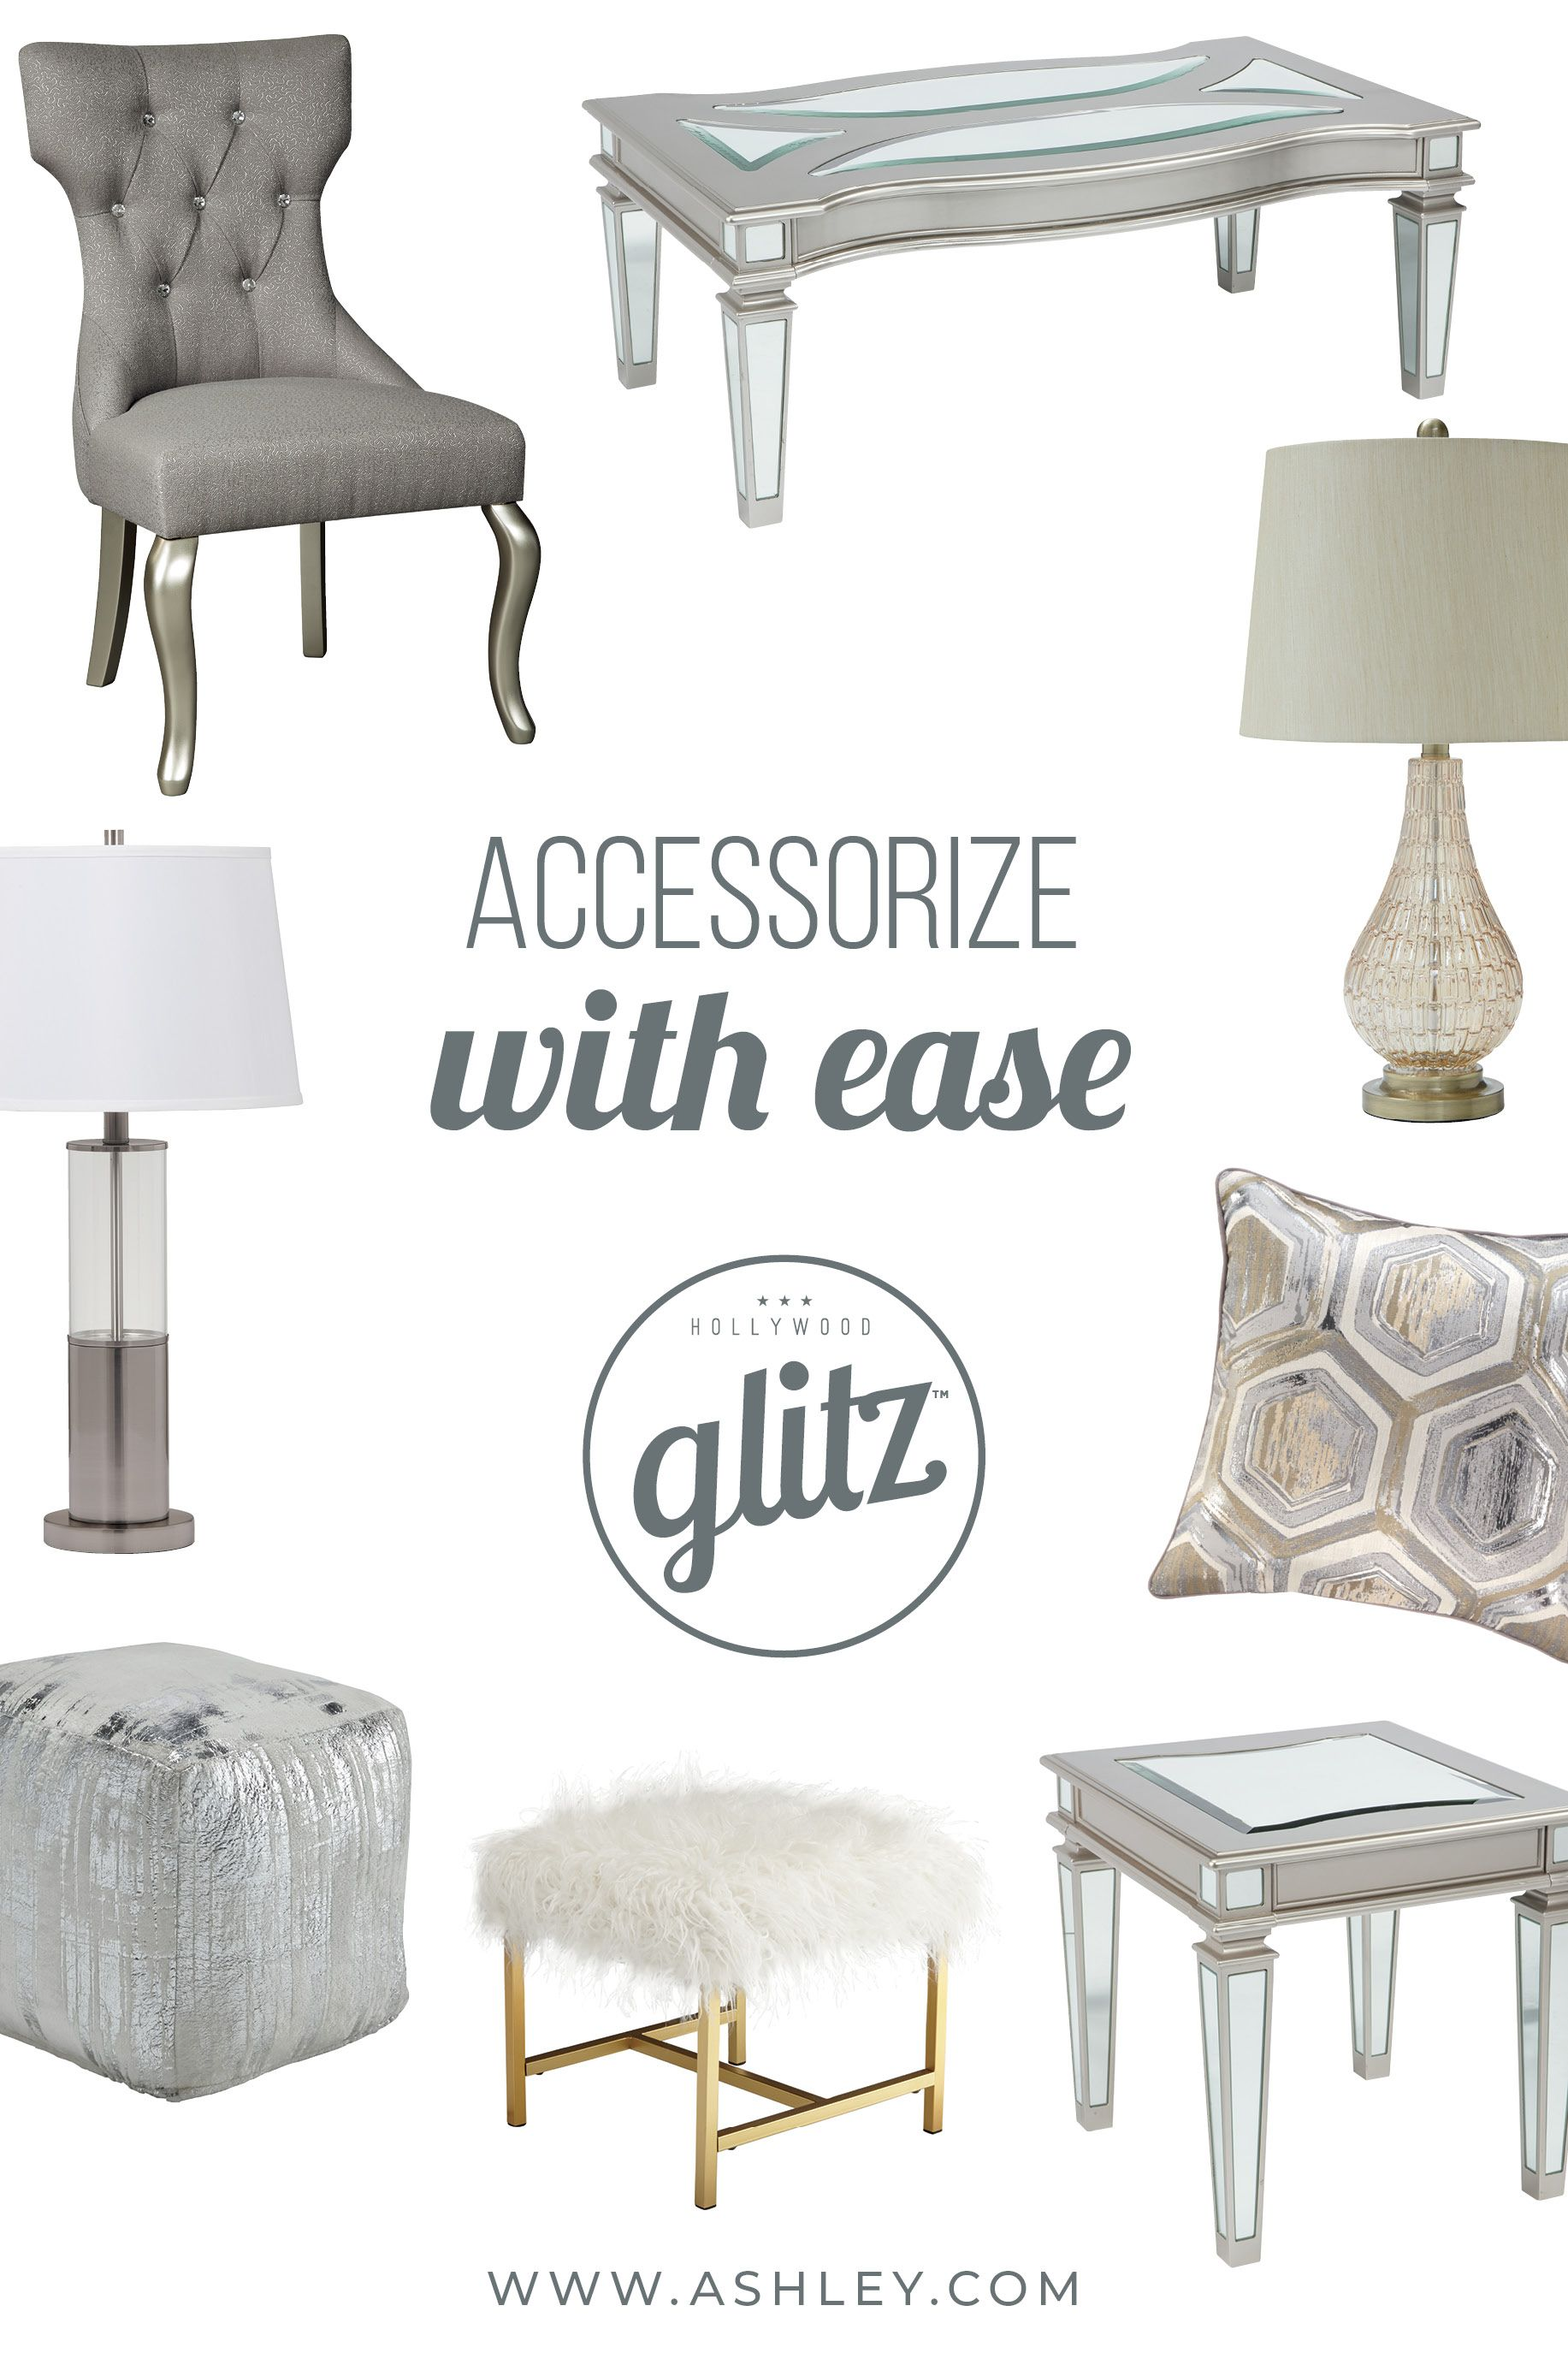 Hollywood Glitz Accents And Accessories From Ashley Furniture Ashleyfurniture Accentsbyashley Ashley Furniture Ashley Furniture Industries Furniture